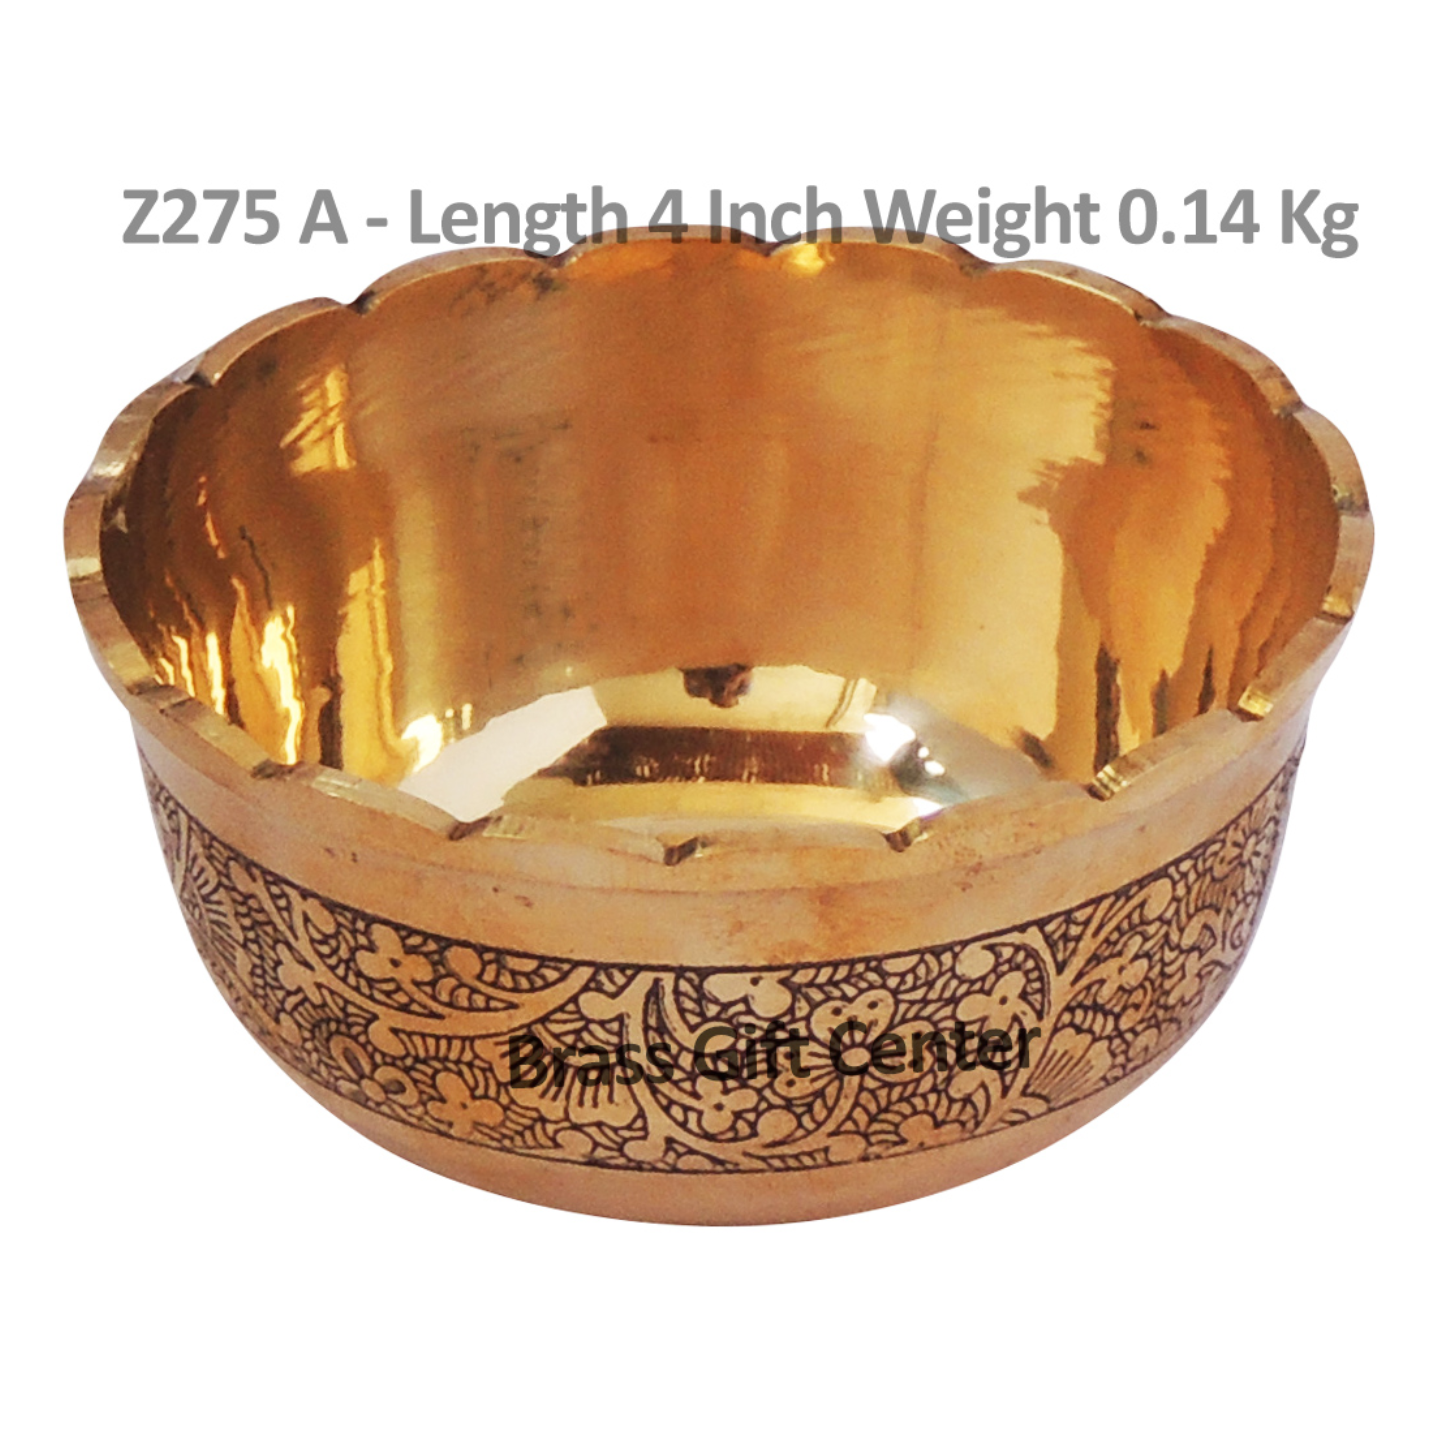 Brass Bowl Katori Flower Design - 4*4*2 Inch  (Z275 A)